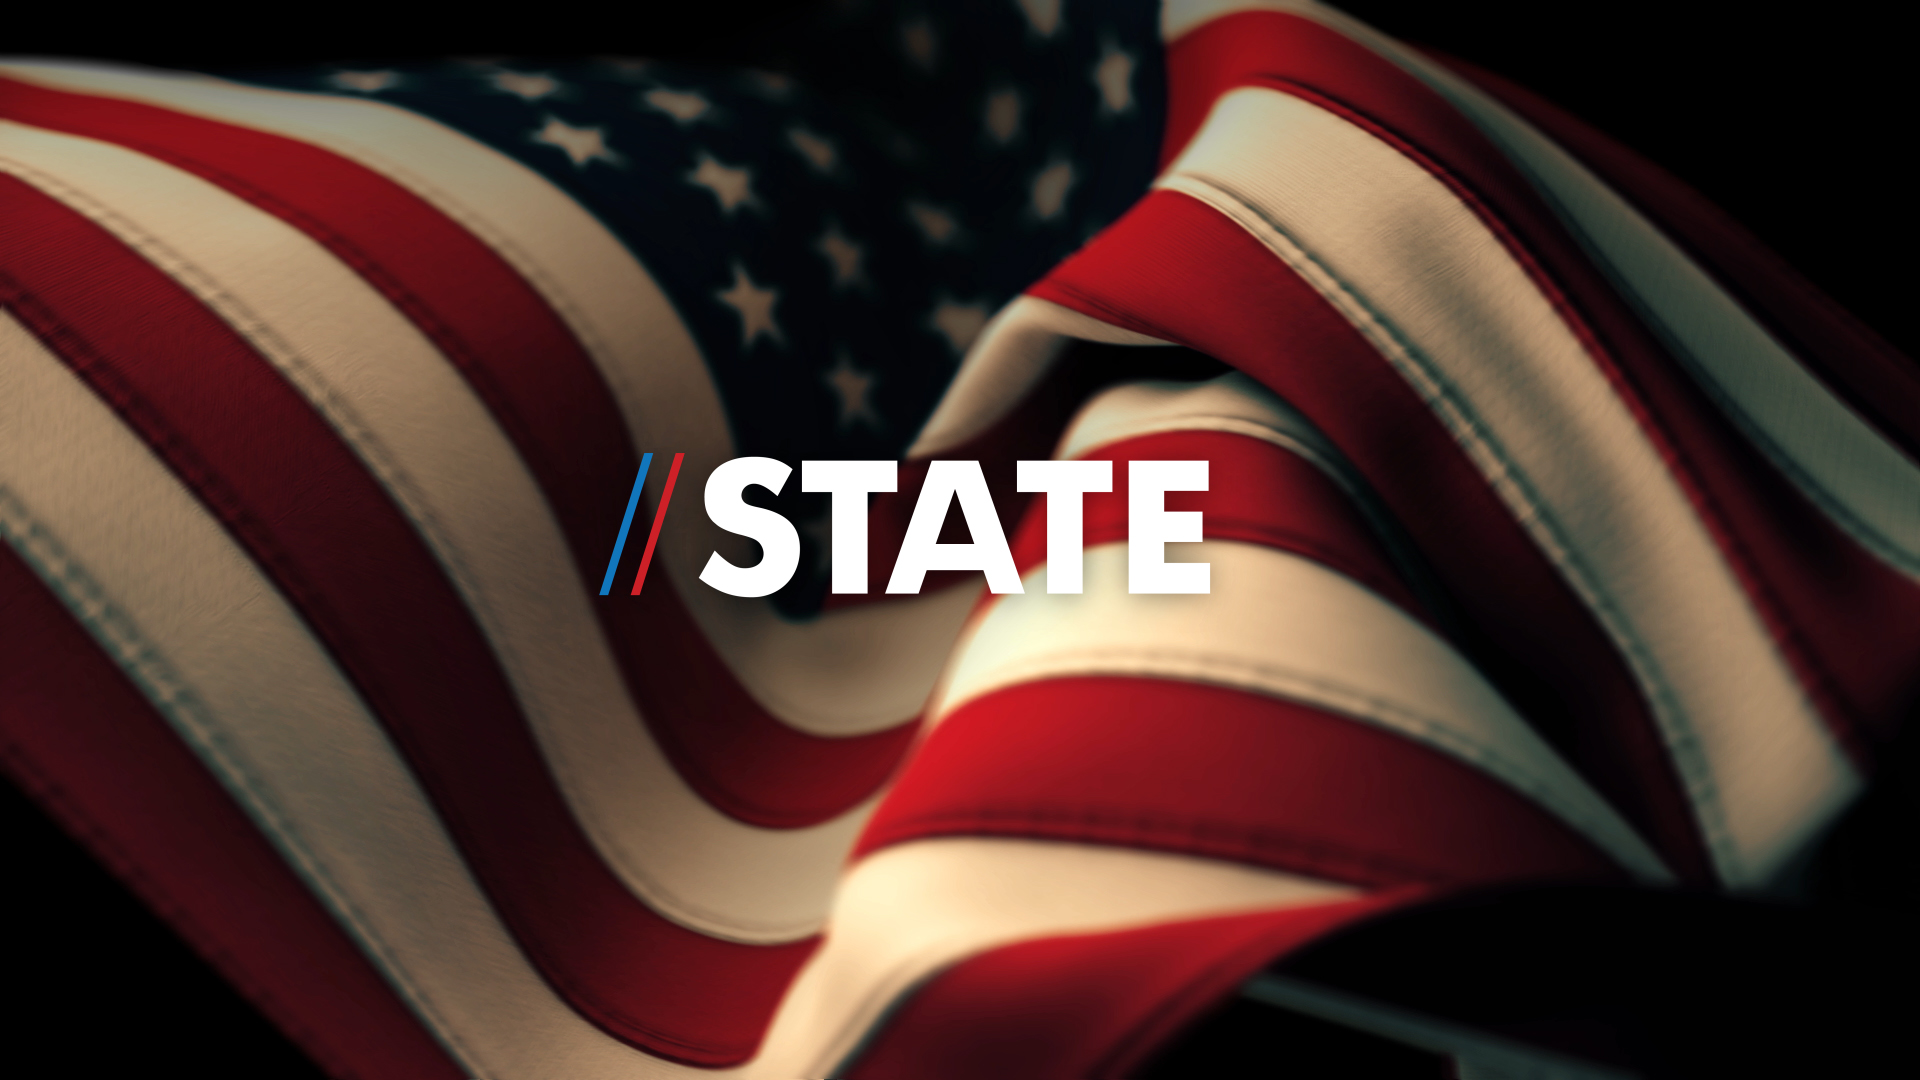 CNN Politics launches STATE